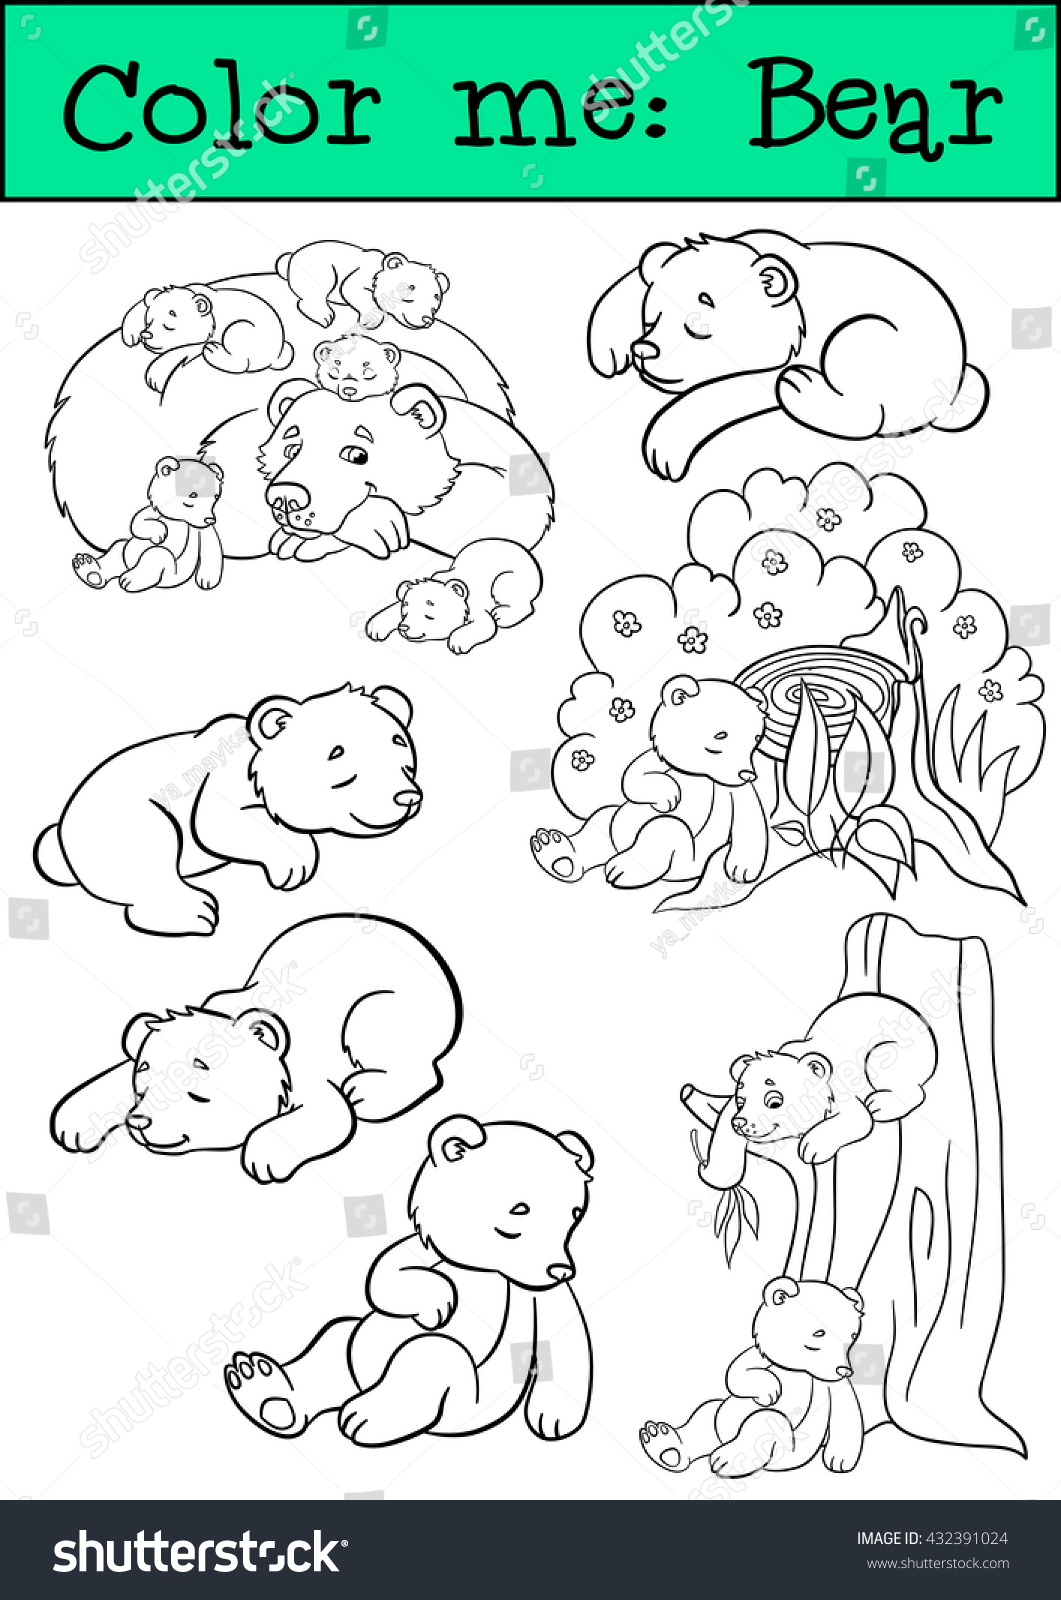 Coloring pages wild animals bears daddy stock vector royalty free